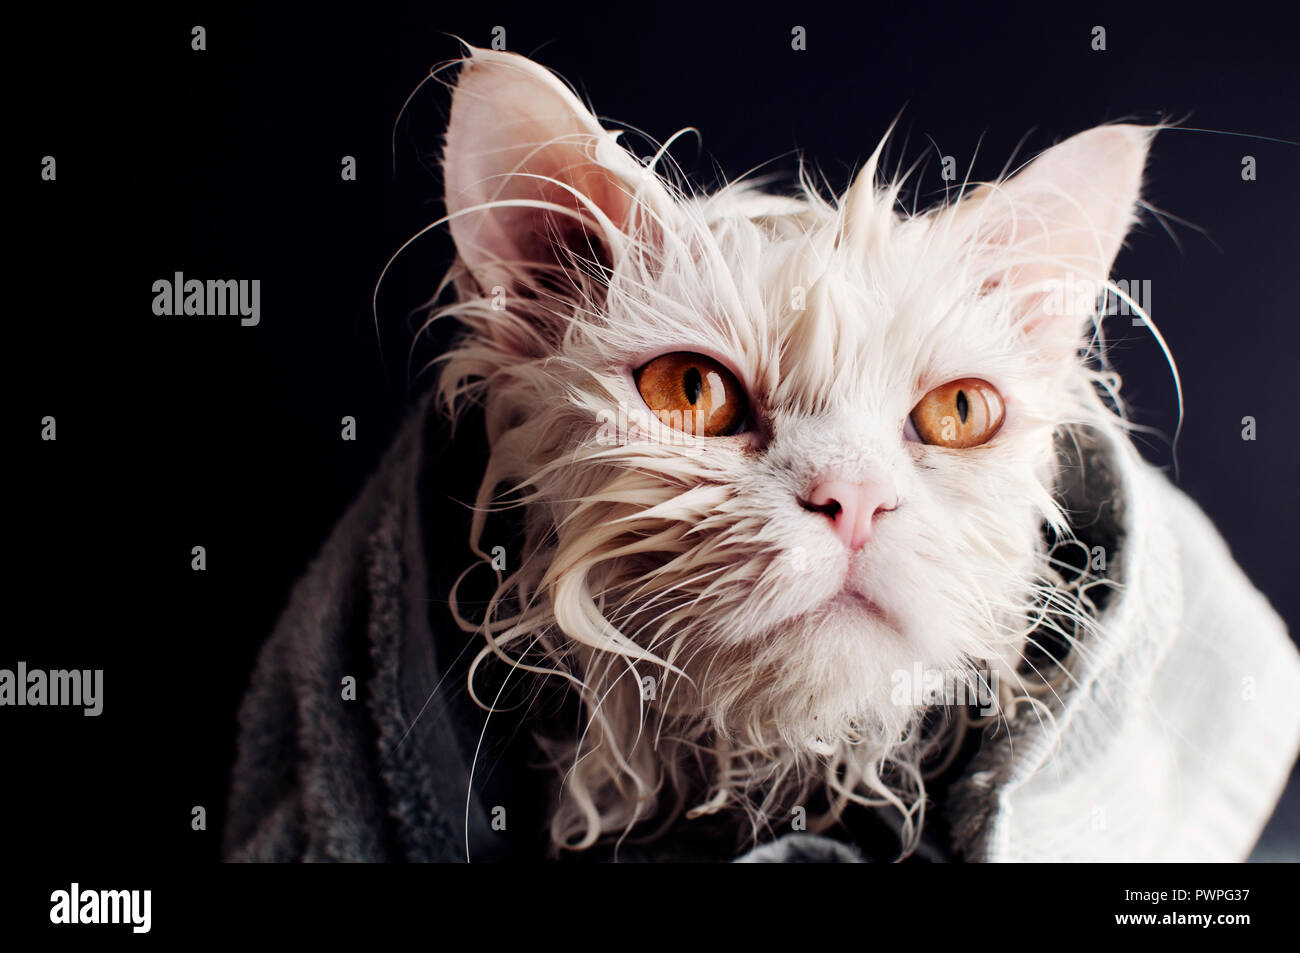 Wet cat after bath wrapped in towel - Stock Image